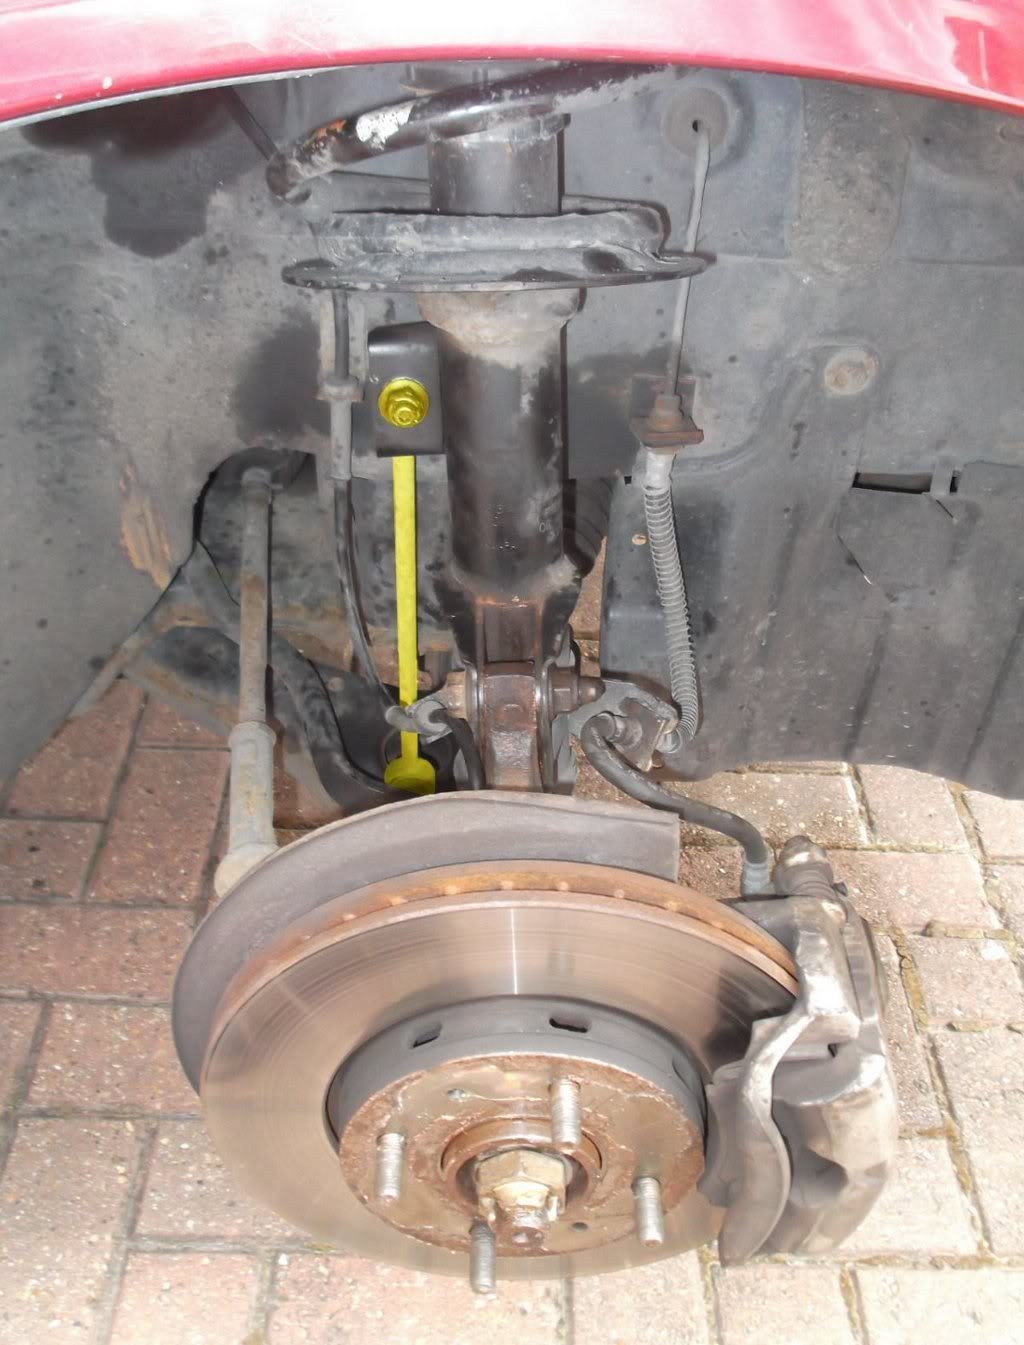 Volvo S80 1999 Volvo S80 Vvt Cam Timing besides 2001 Volvo S40 Repair Manual moreover Saab 9 5 Crankshaft Position Sensor further Volvo C70 Engine Mount Diagram in addition 304519 Where Bank 1 Sensor 1 A. on how to replace camshaft sensor 2004 volvo s40